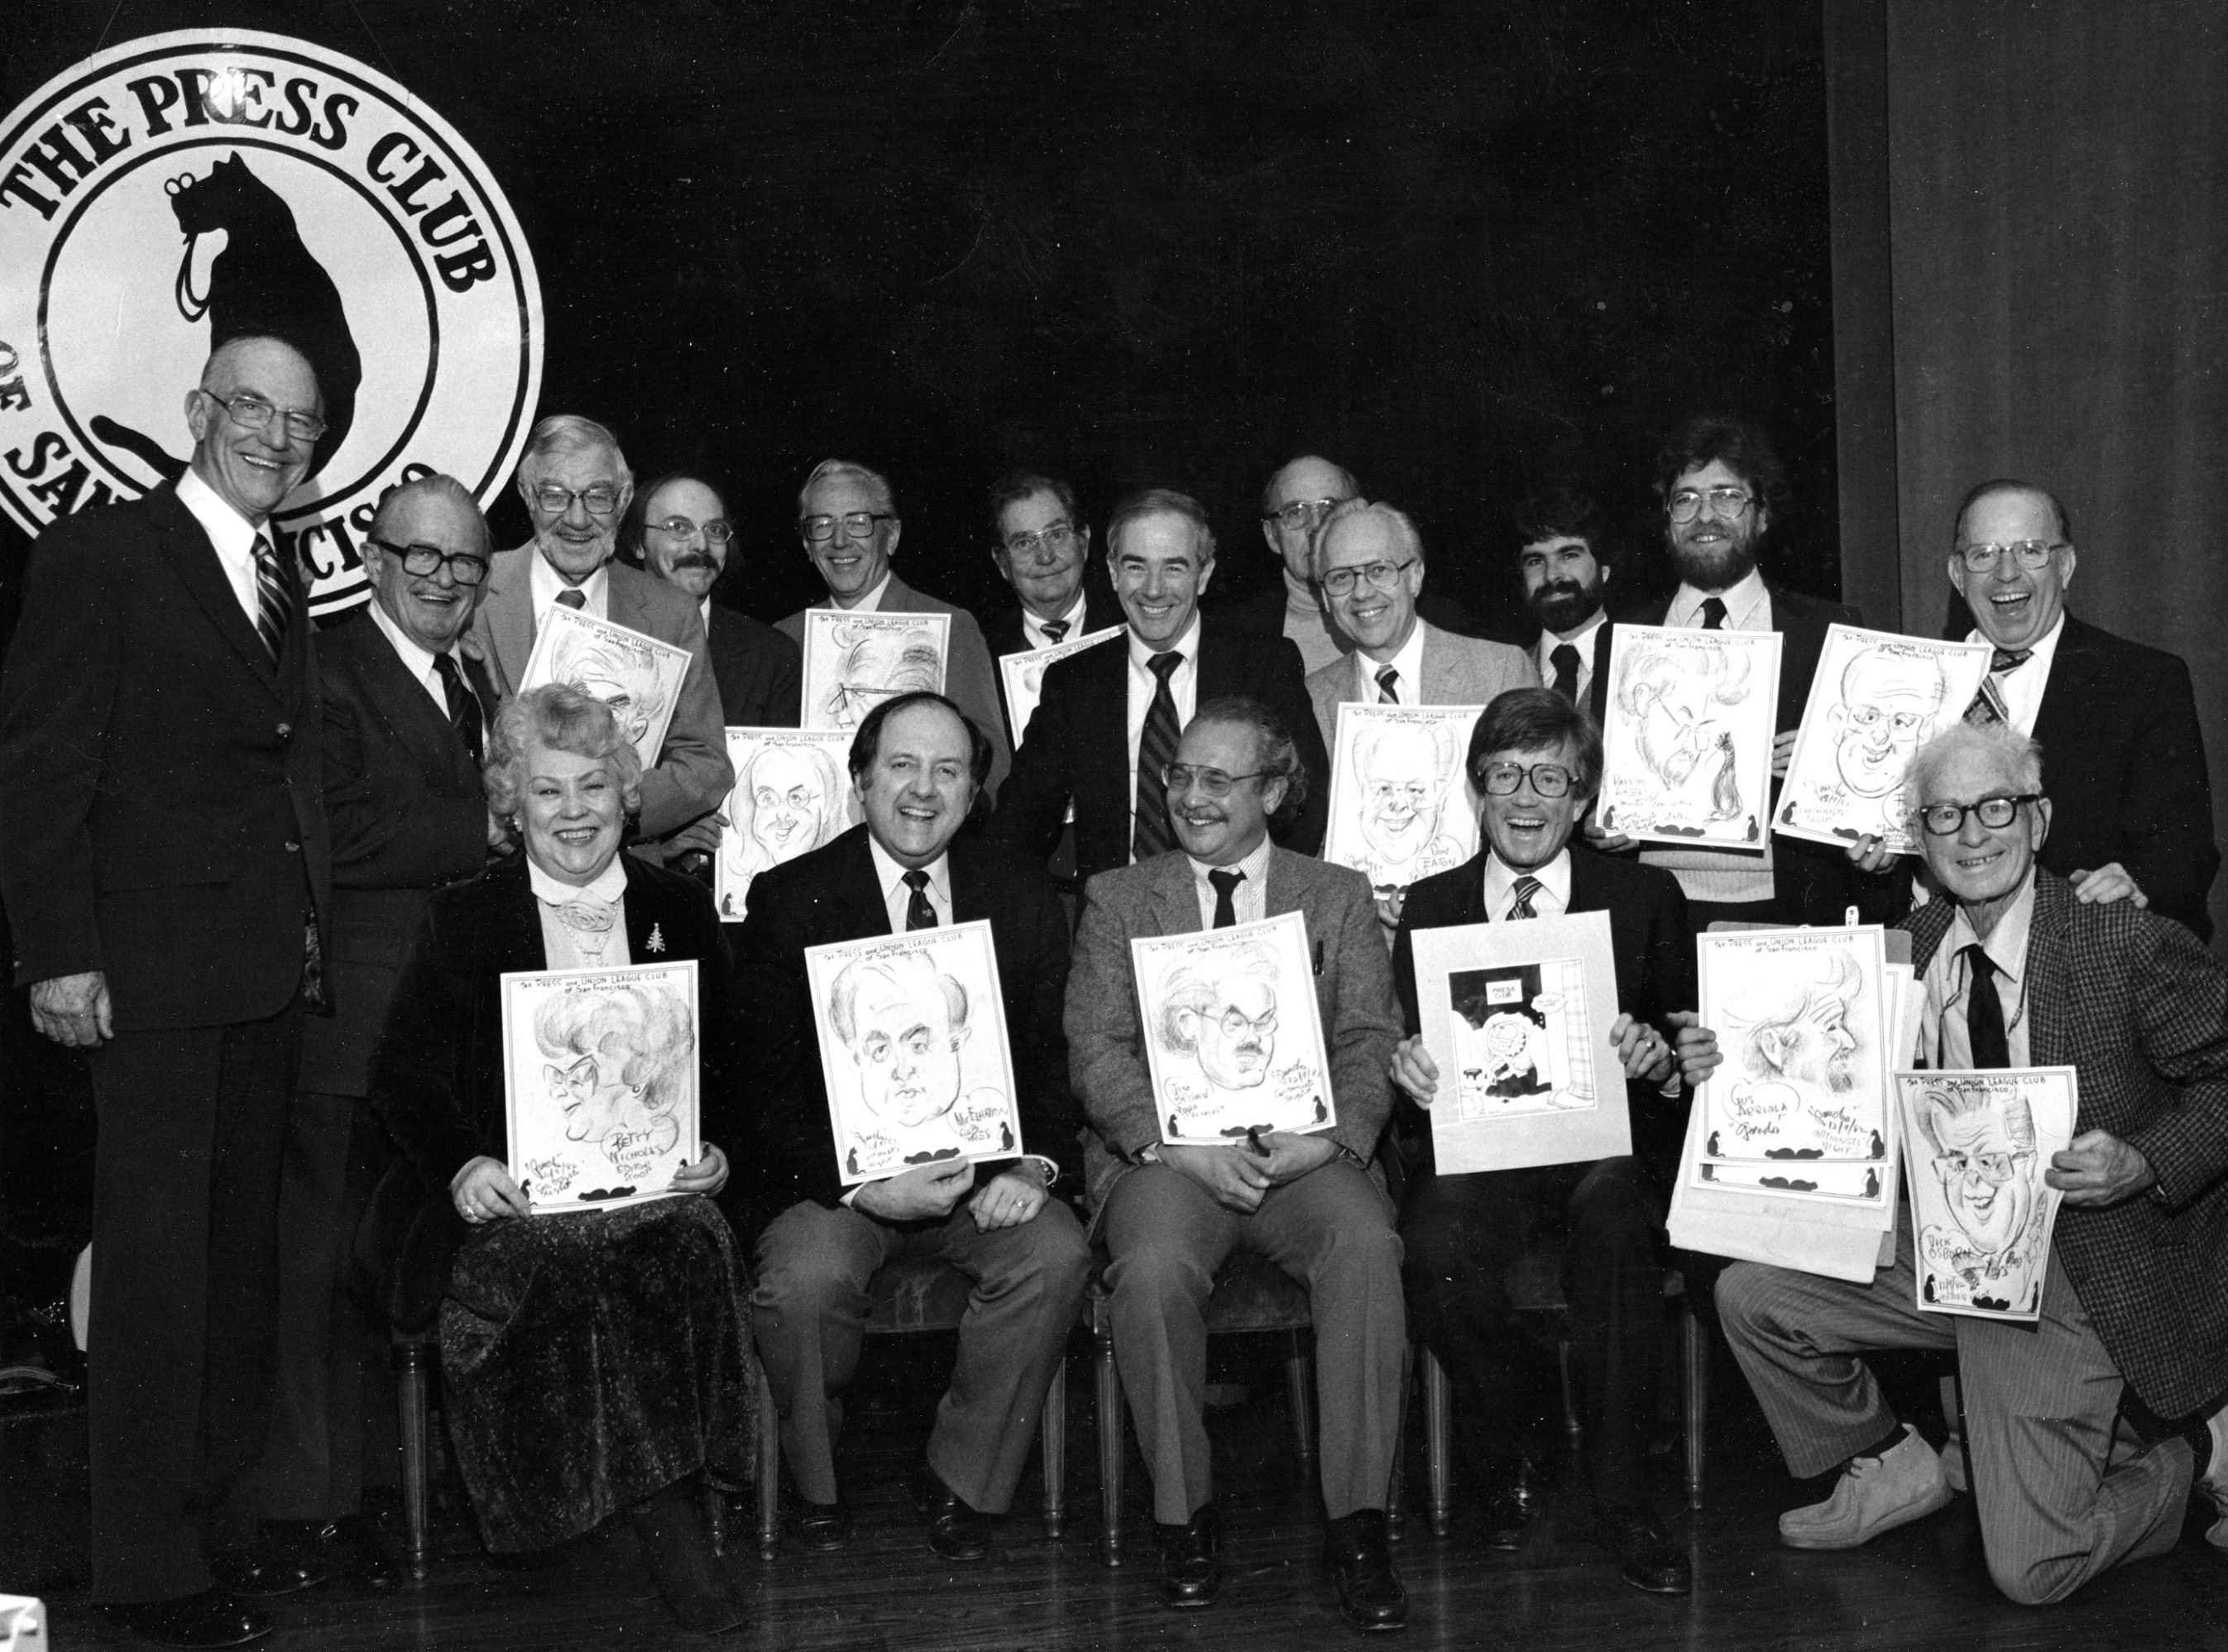 Press Club Photo659